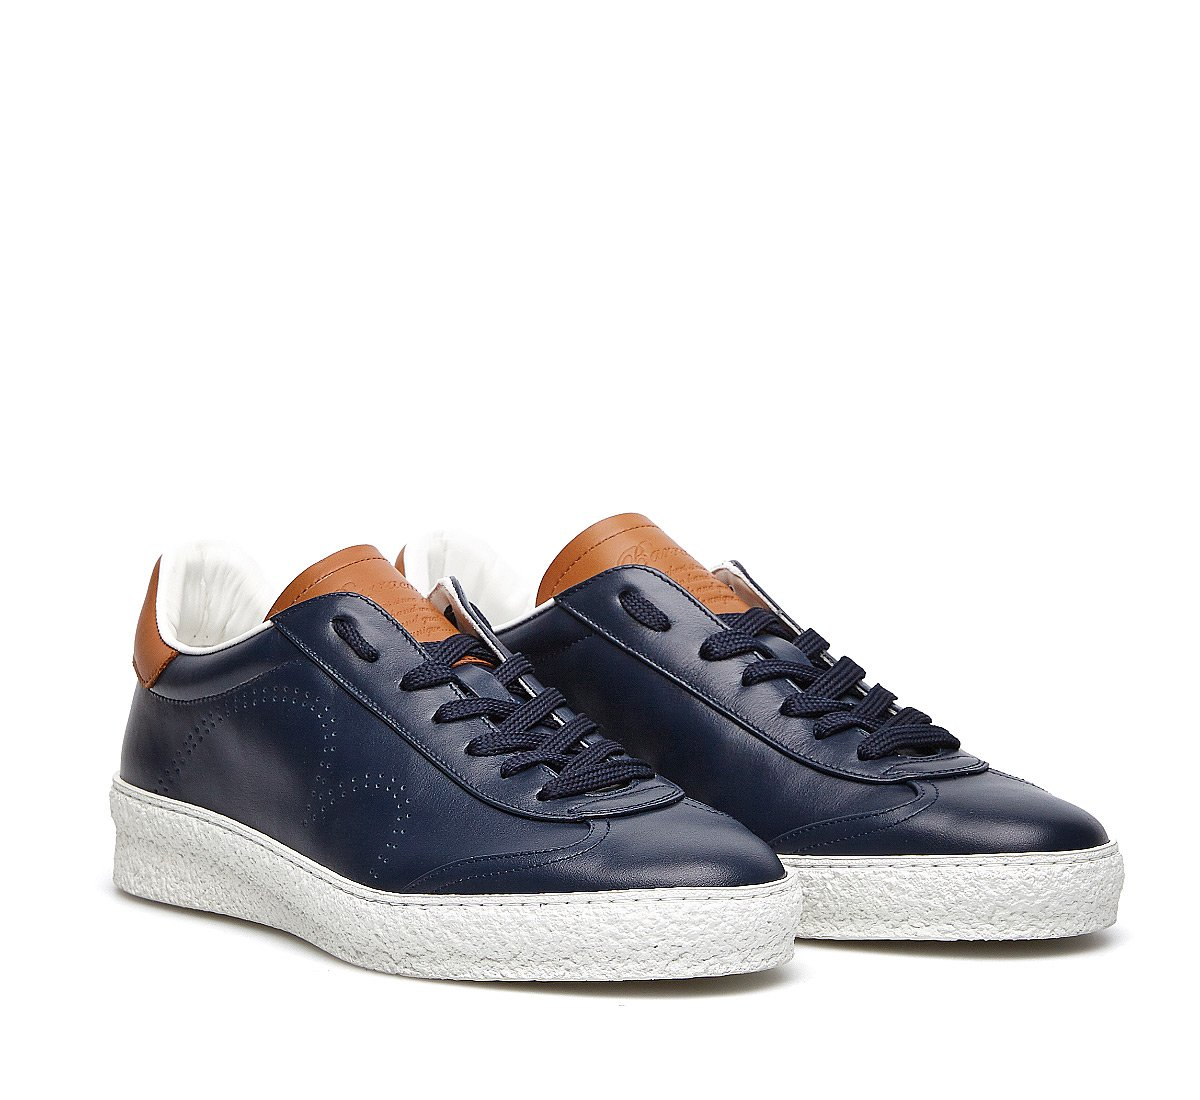 Barracuda GUGA sneakers